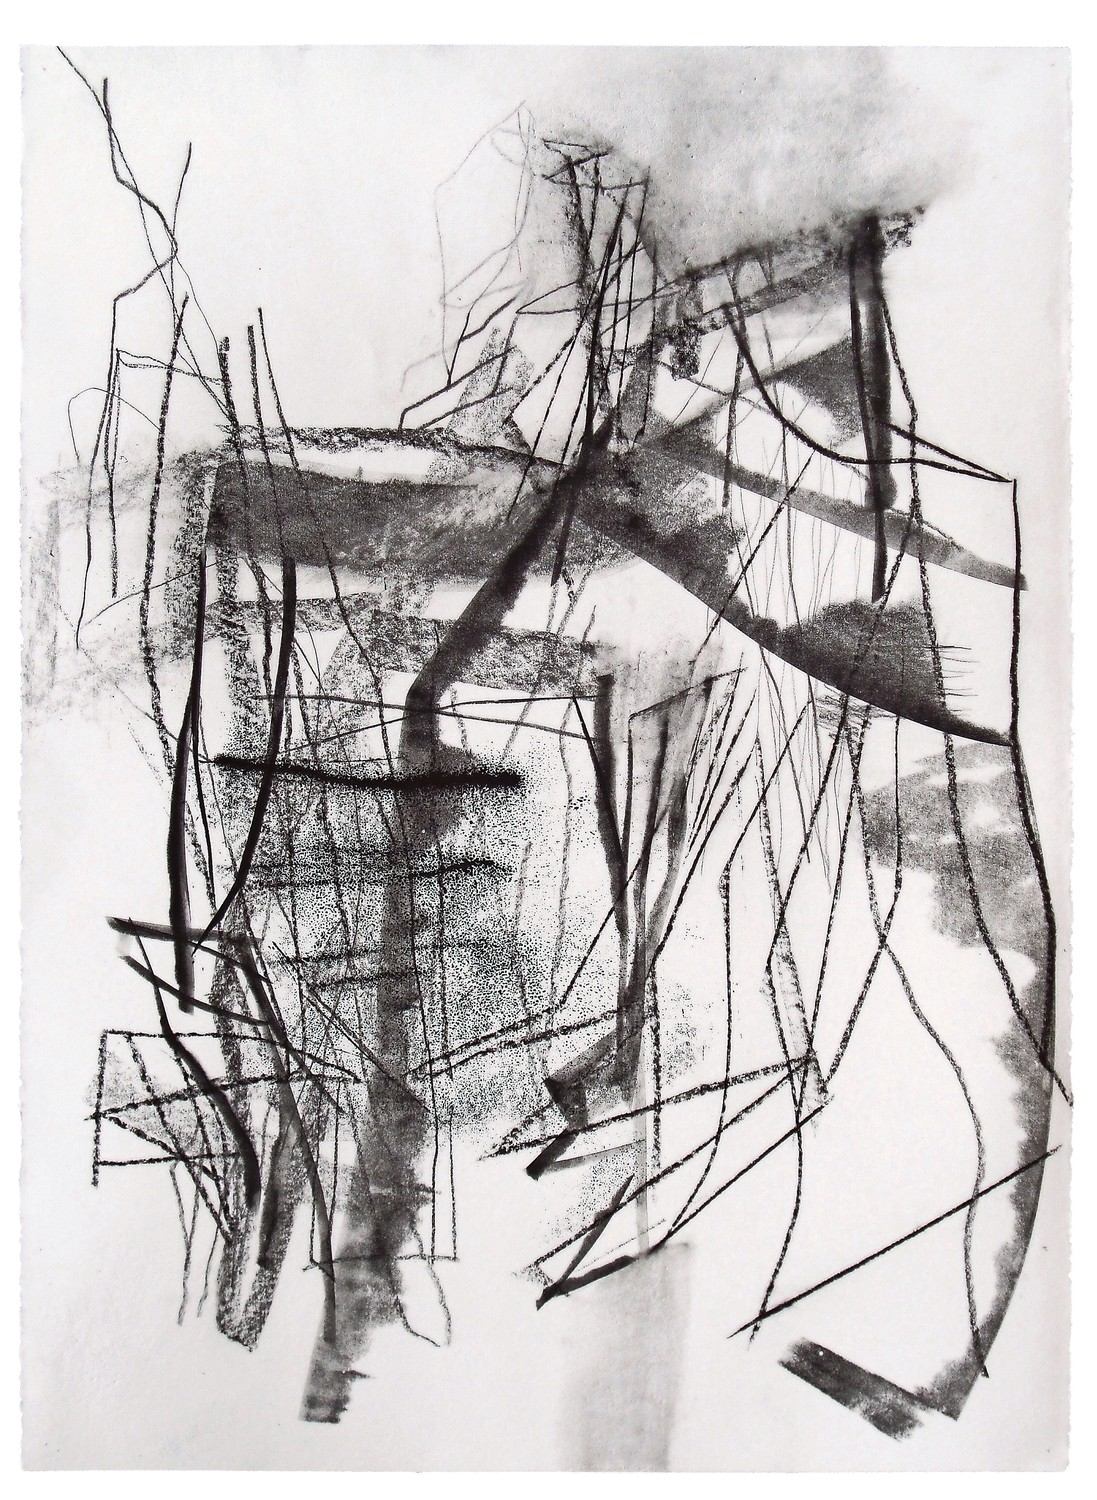 Drawing is central to Christine Hiebert's artistic practice, and she works with a variety of materials, including charcoal, ink and graphite. An exhibition of her work, 'Force Fields: Drawings by Christine Hiebert,' is on display at the Hudson River Museum through Sept. 9.